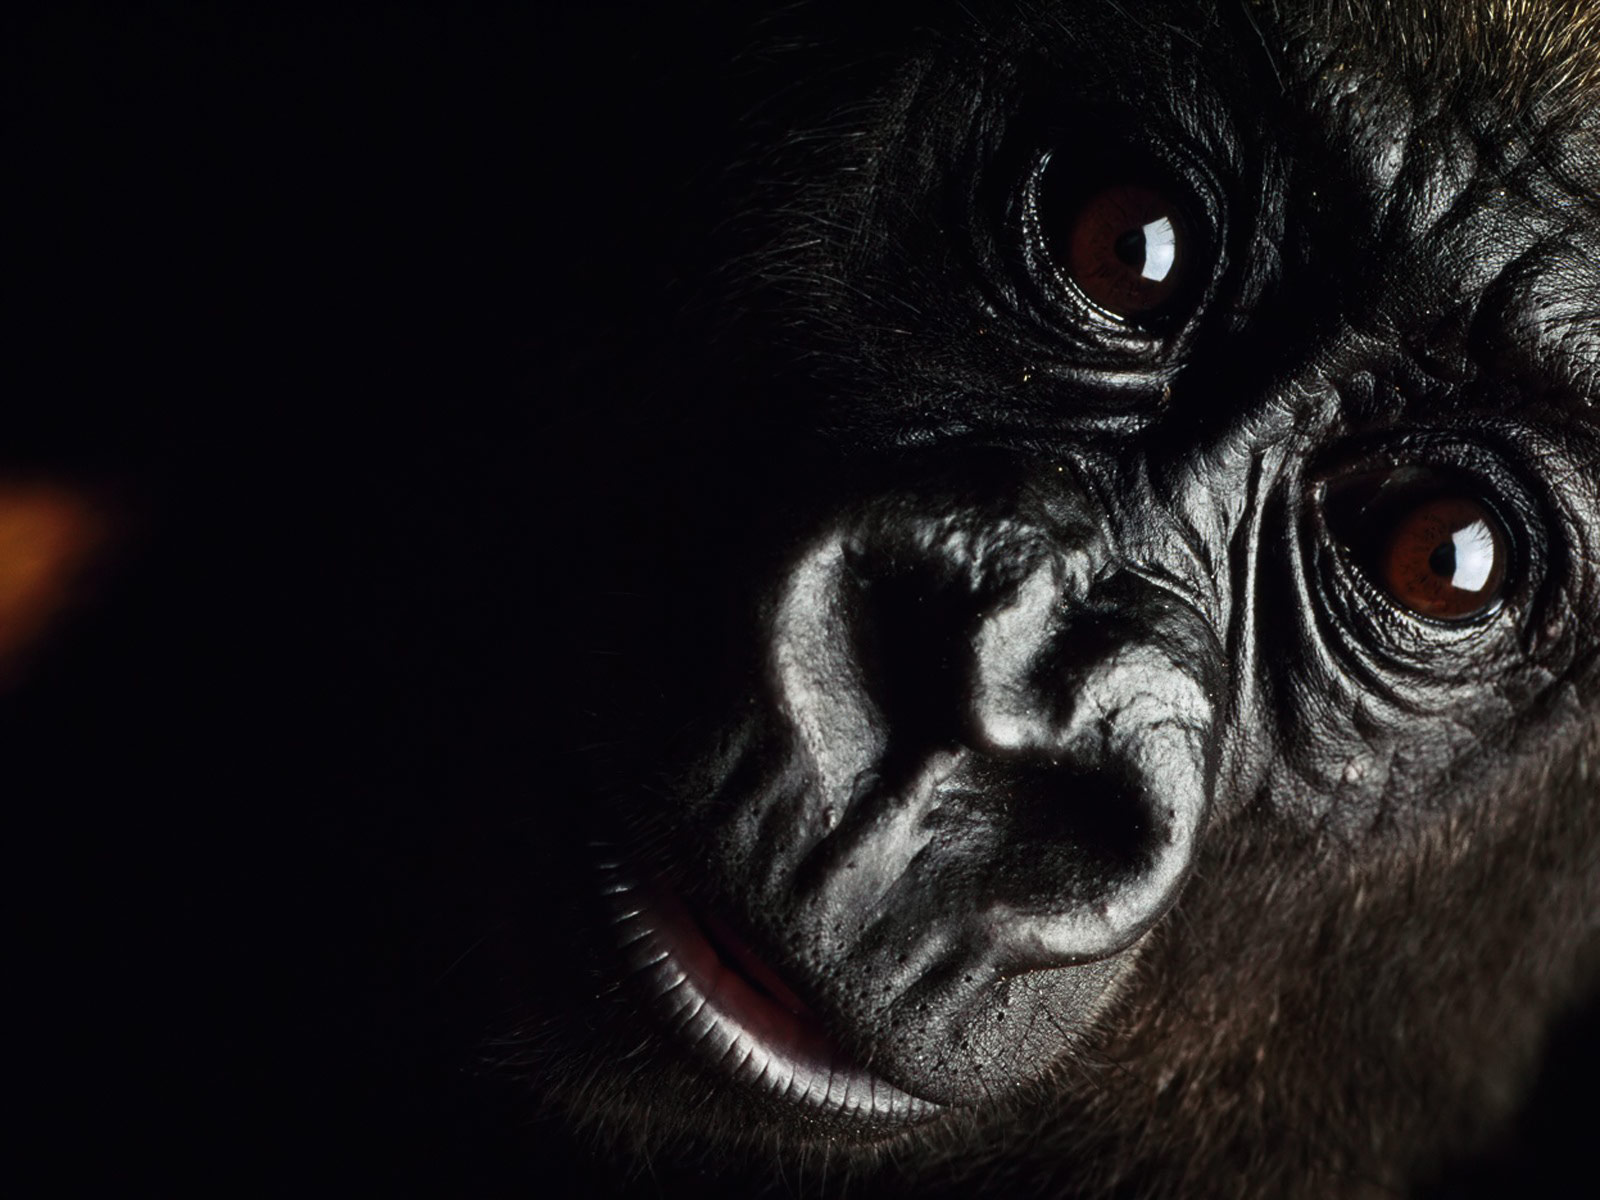 Gorilla Wallpapers Animals Library 1600x1200